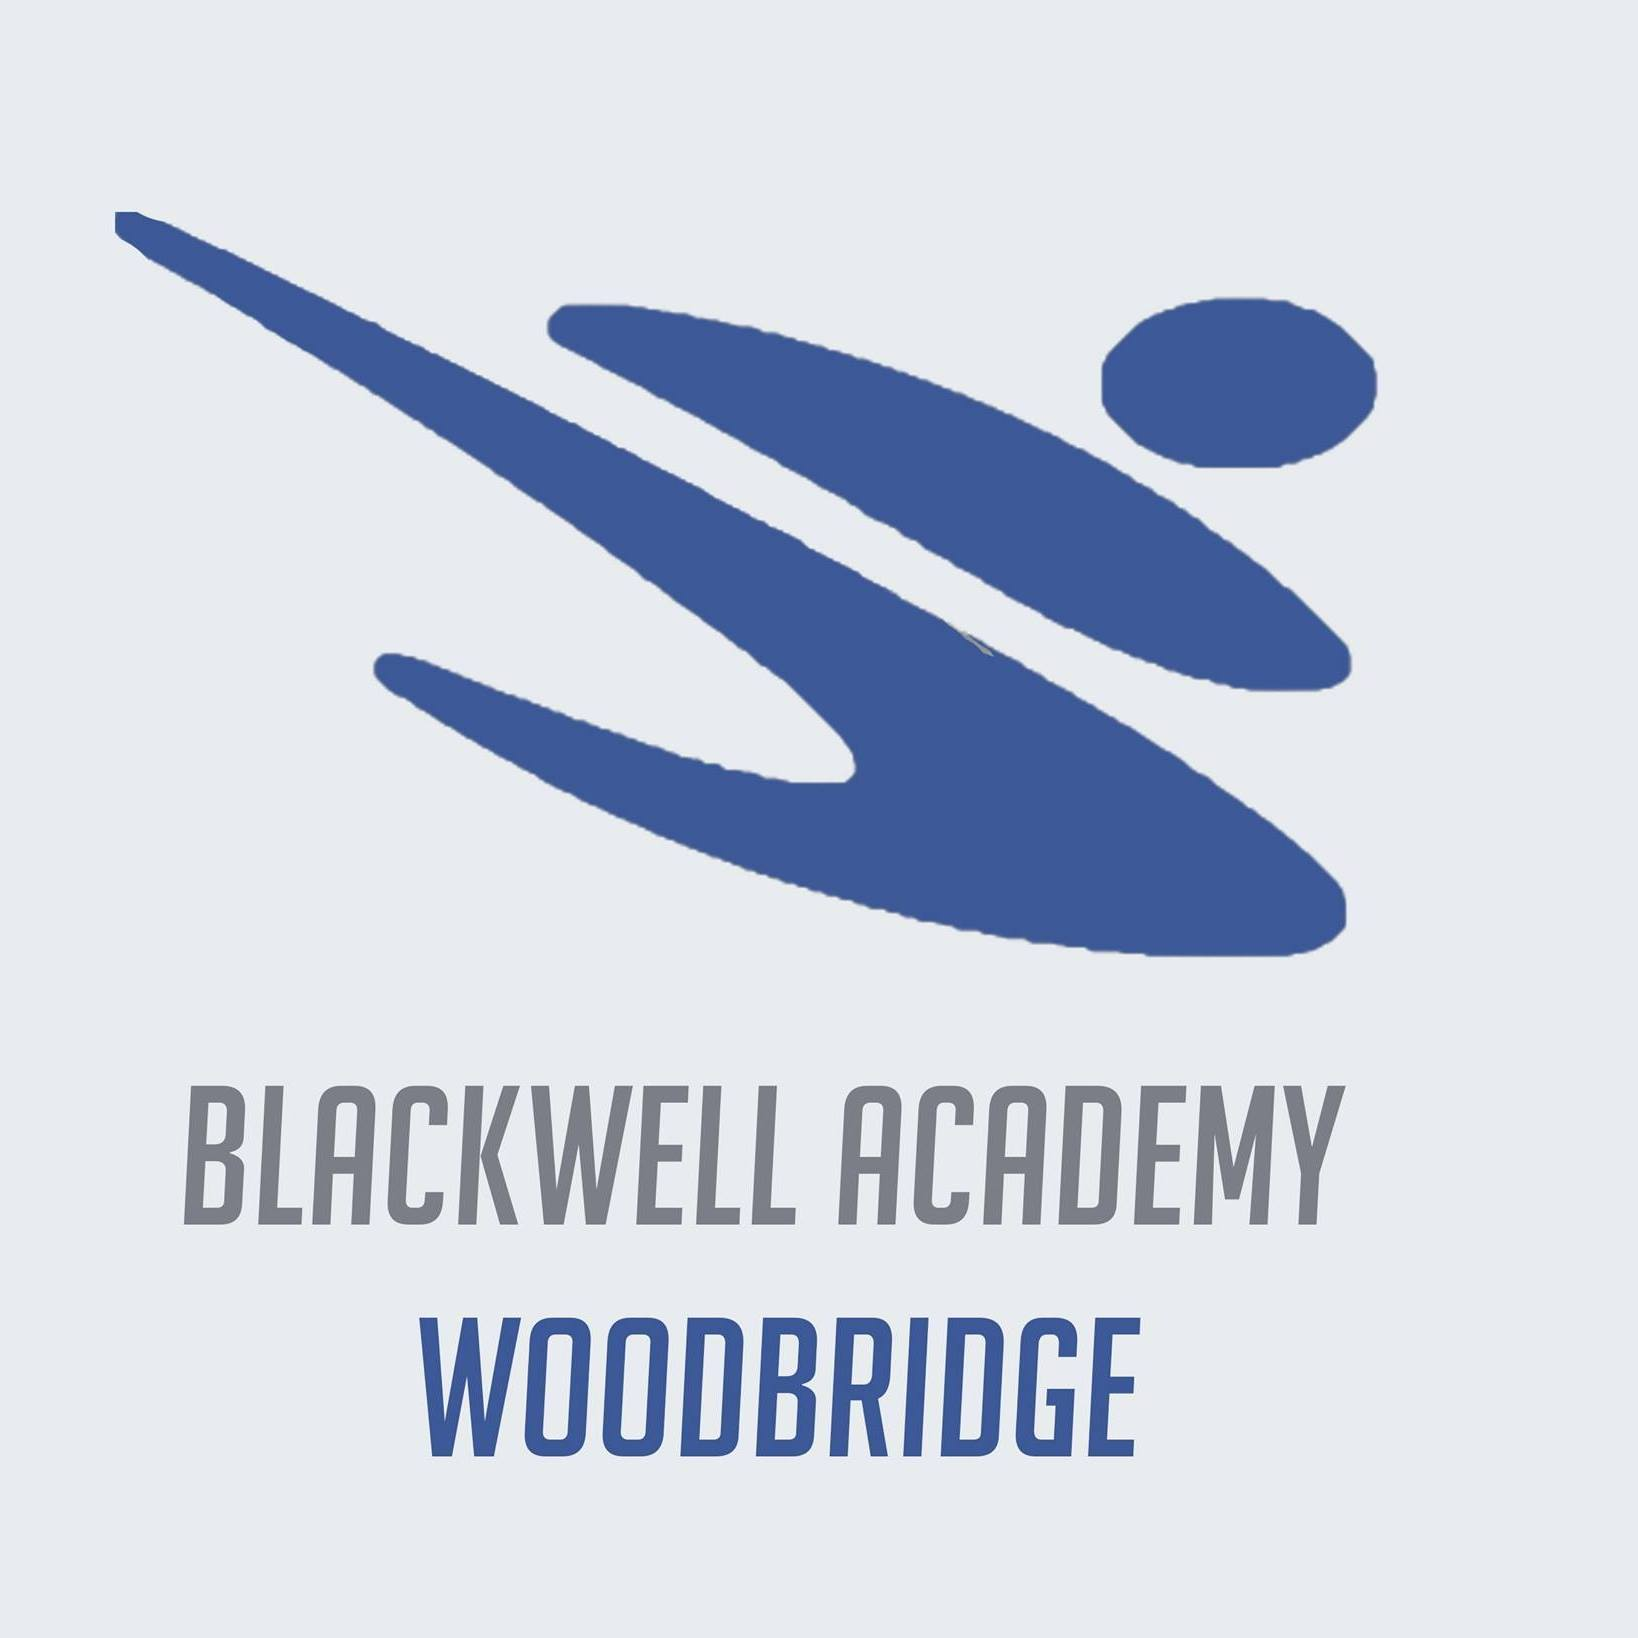 Blackwell Academy Woodbridge